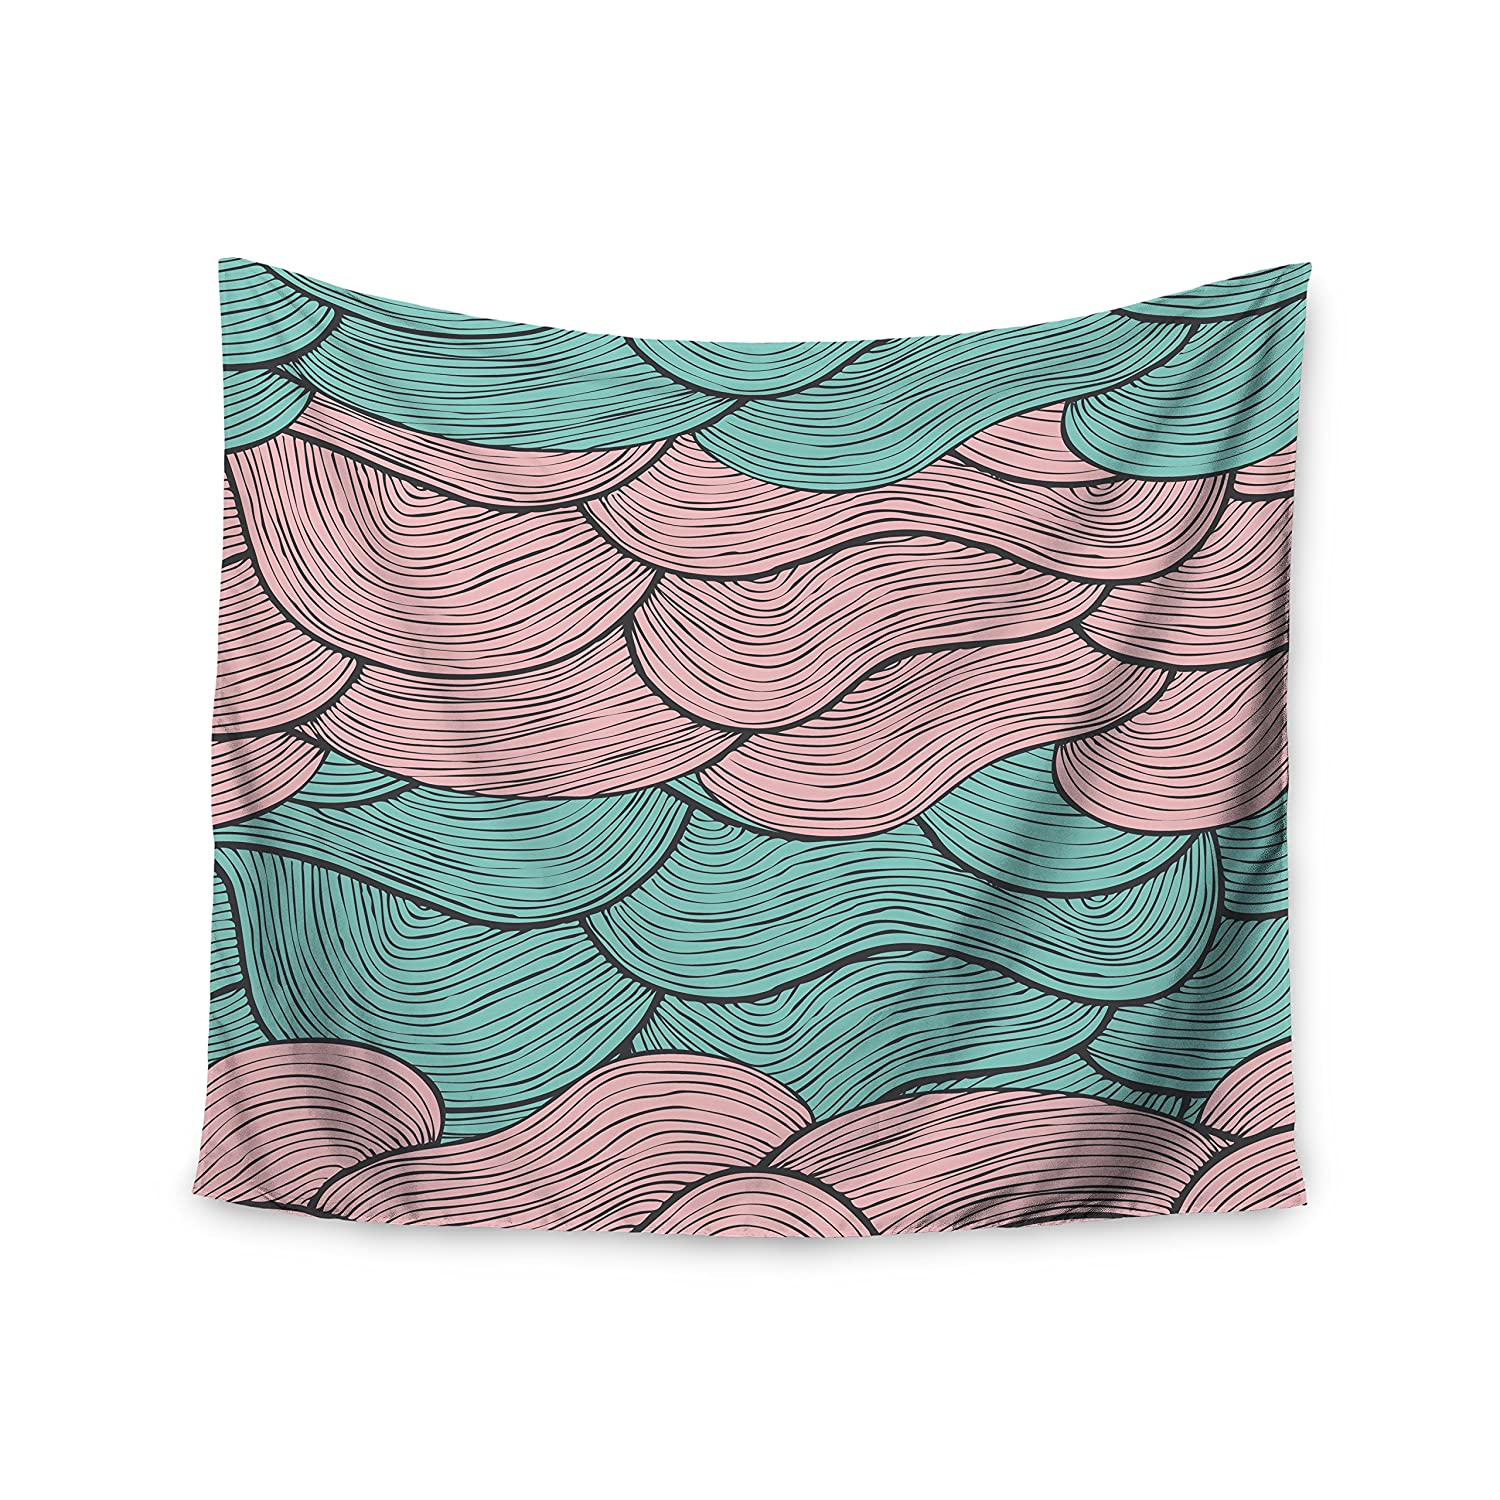 Kess InHouse Pom Graphic Design Summerlicious Green Pink Wall Tapestry 51 X 60